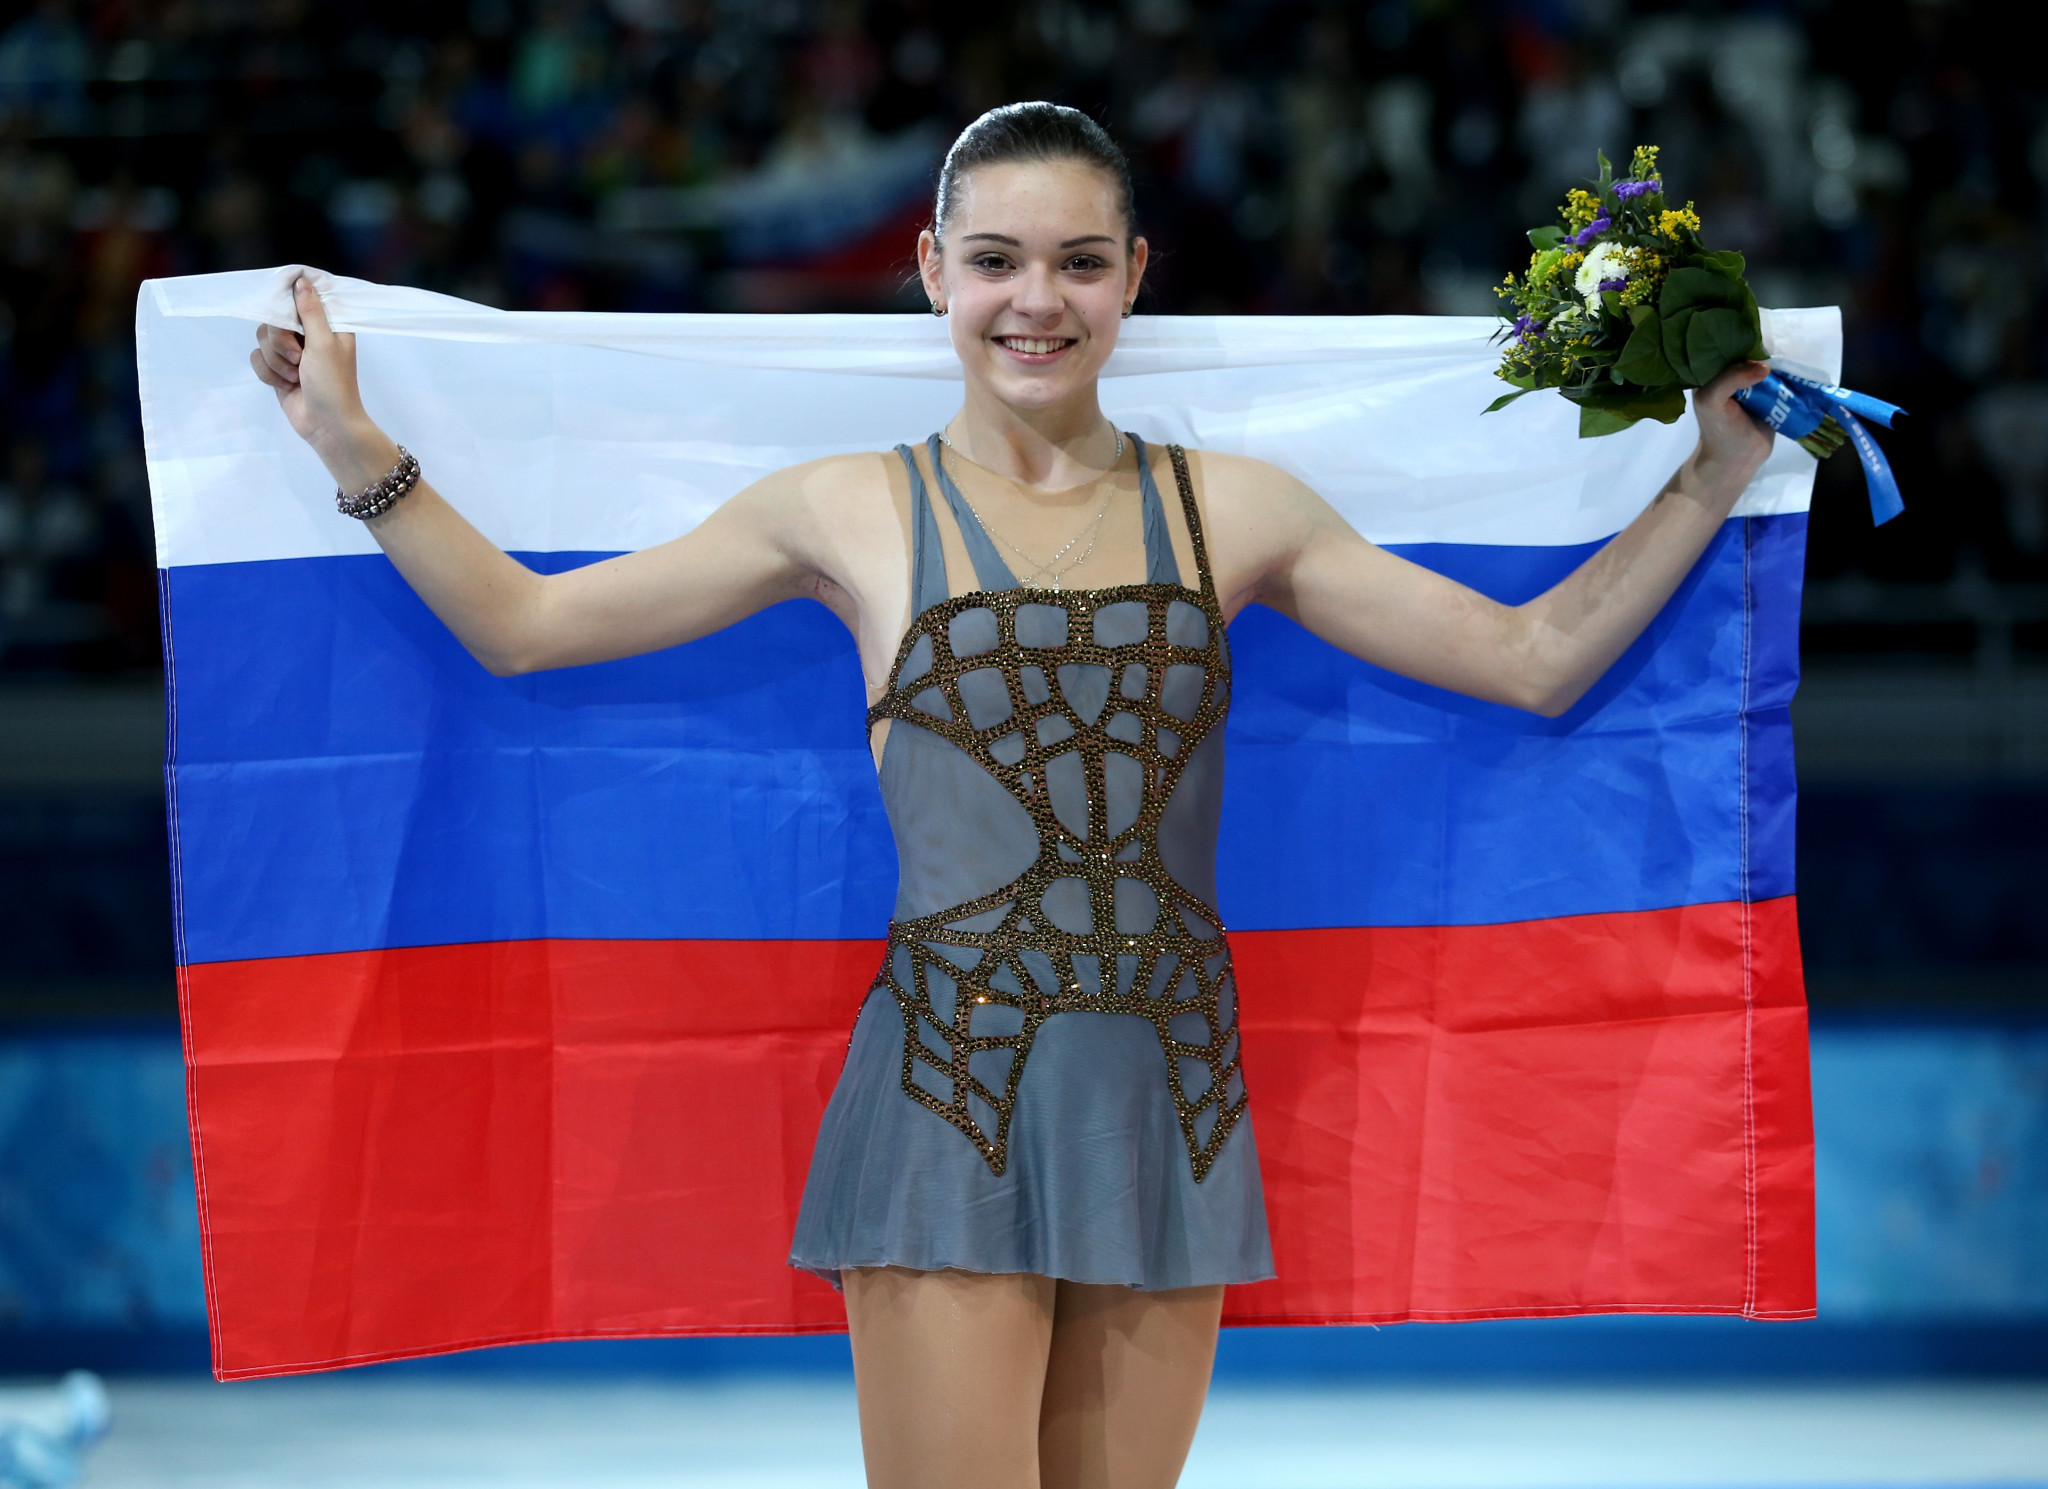 Adelina Sotnikova will not be able to defend the Olympic title she won at Sochi 2014 in Pyeongchang next year because of injury ©Getty Images